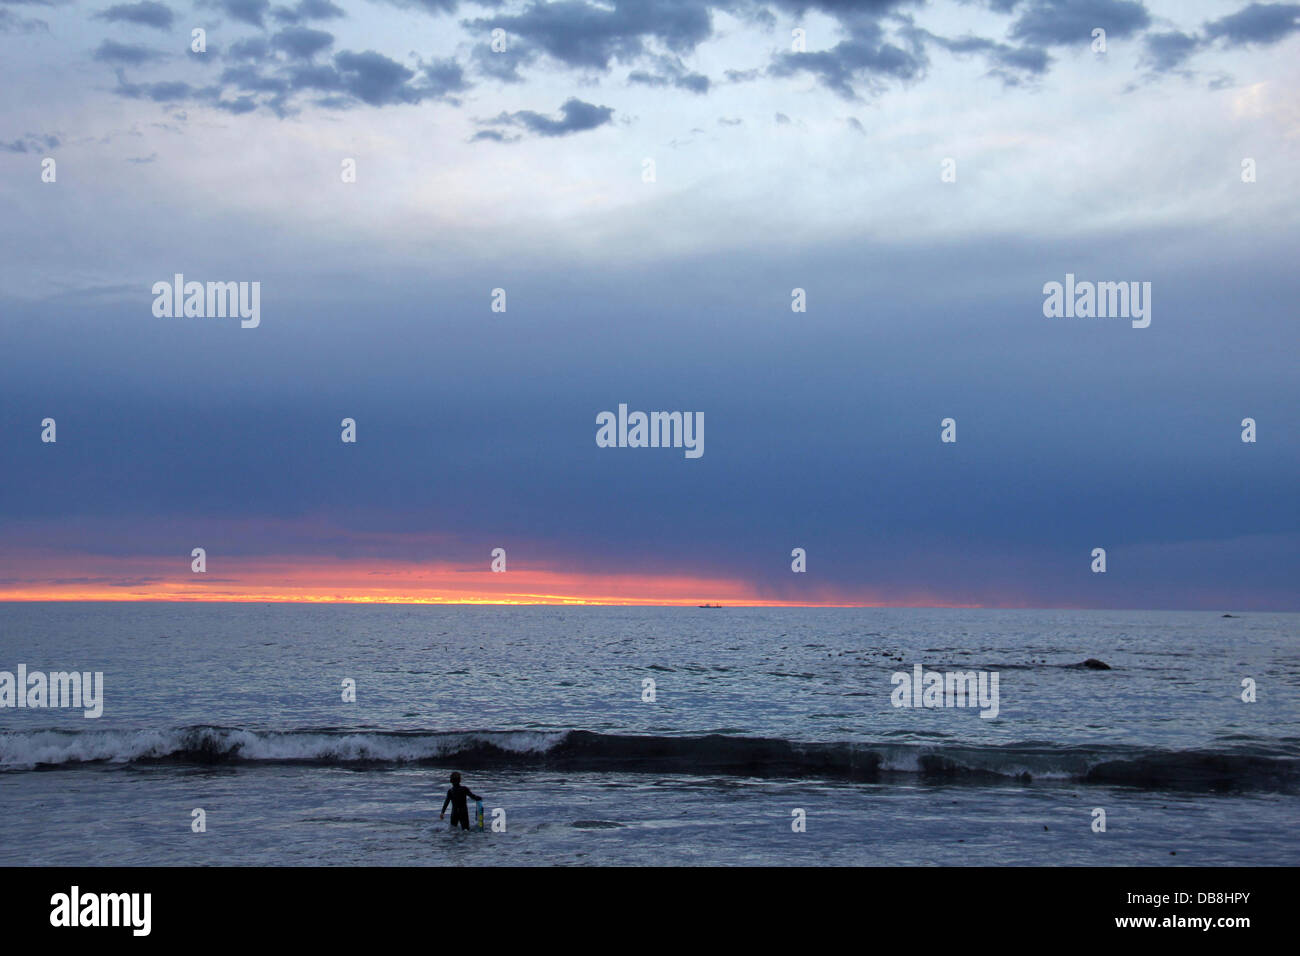 sunset, Atlantic seaboard, Clifton, Cape Town - Stock Image